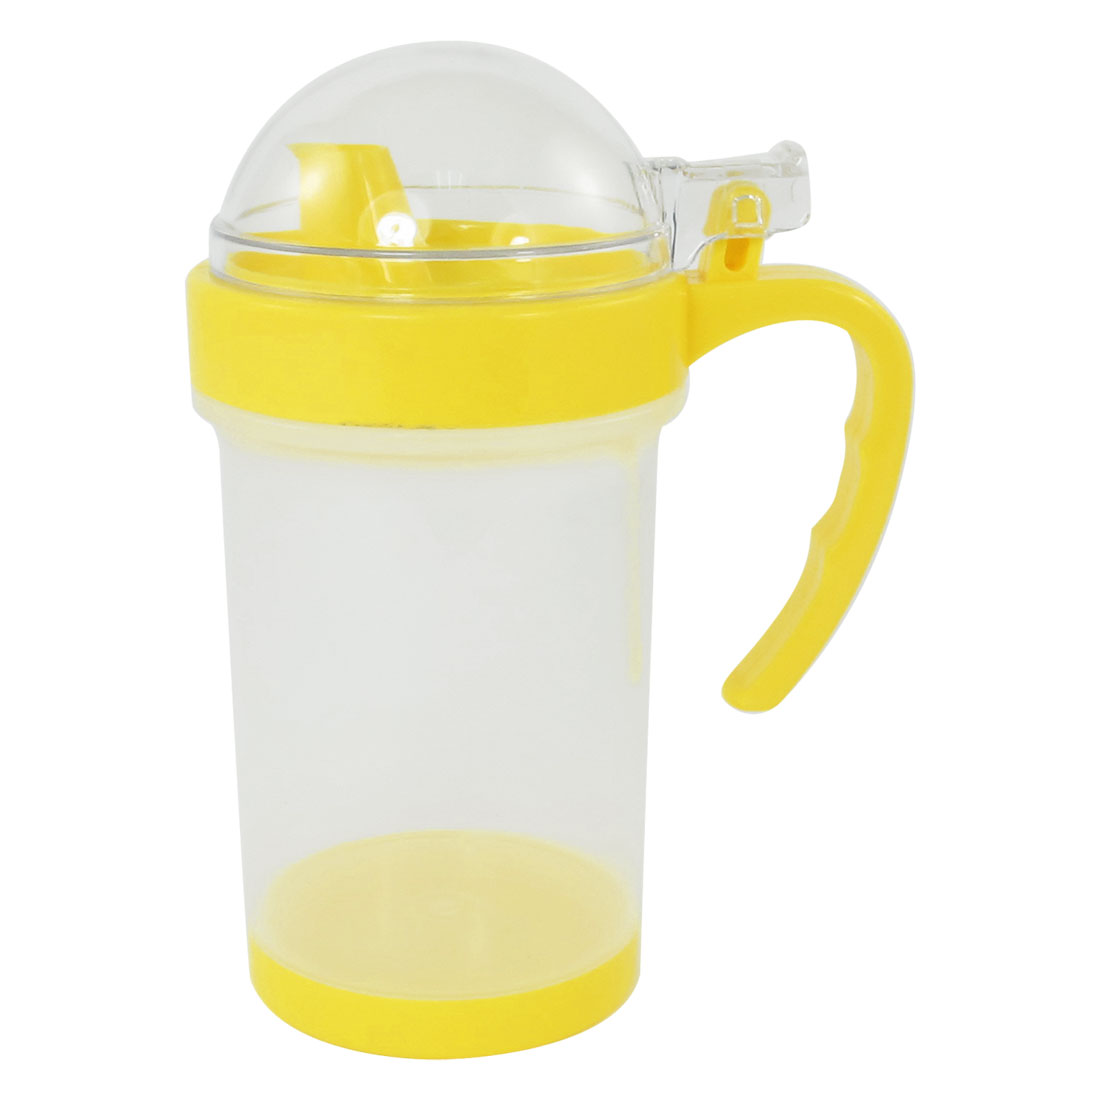 380ml Capacity Yellow Clear Plastic Oil Pot Soy Sauce Kettle